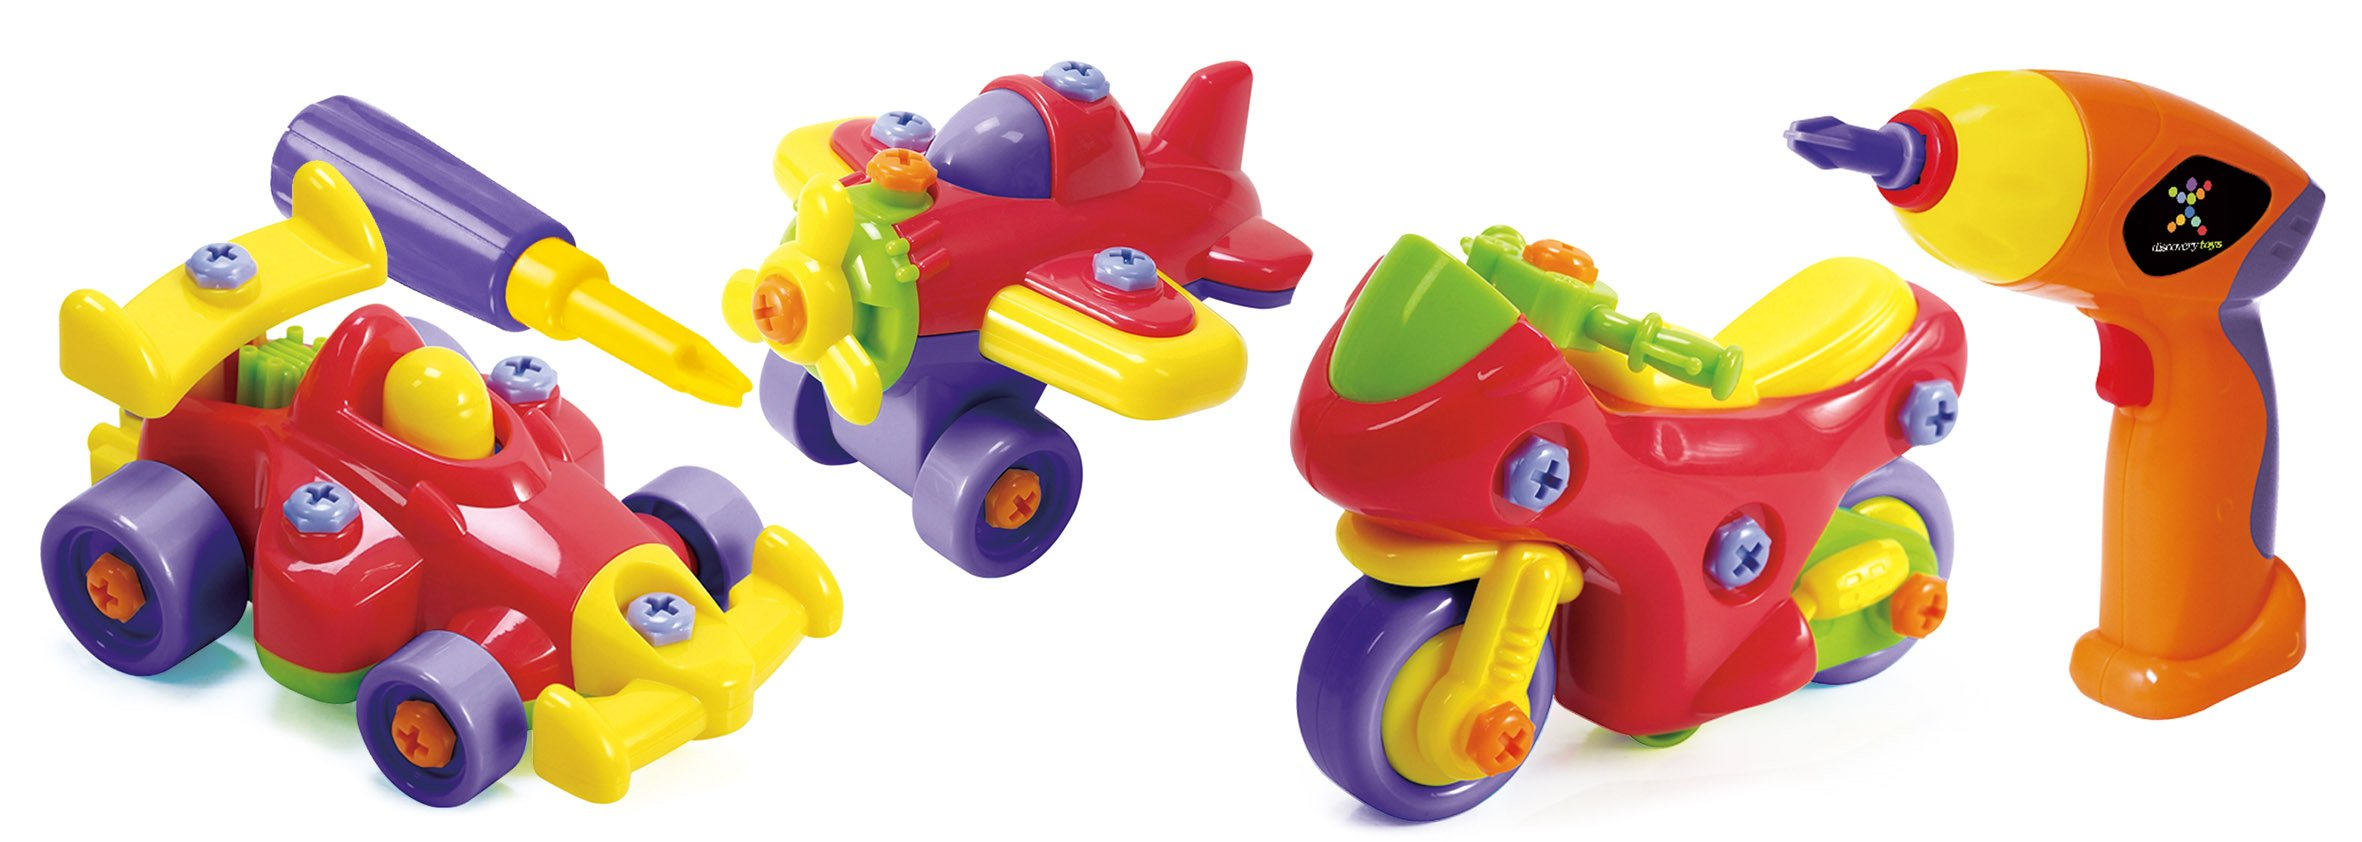 Motor Works by Discovery Toys